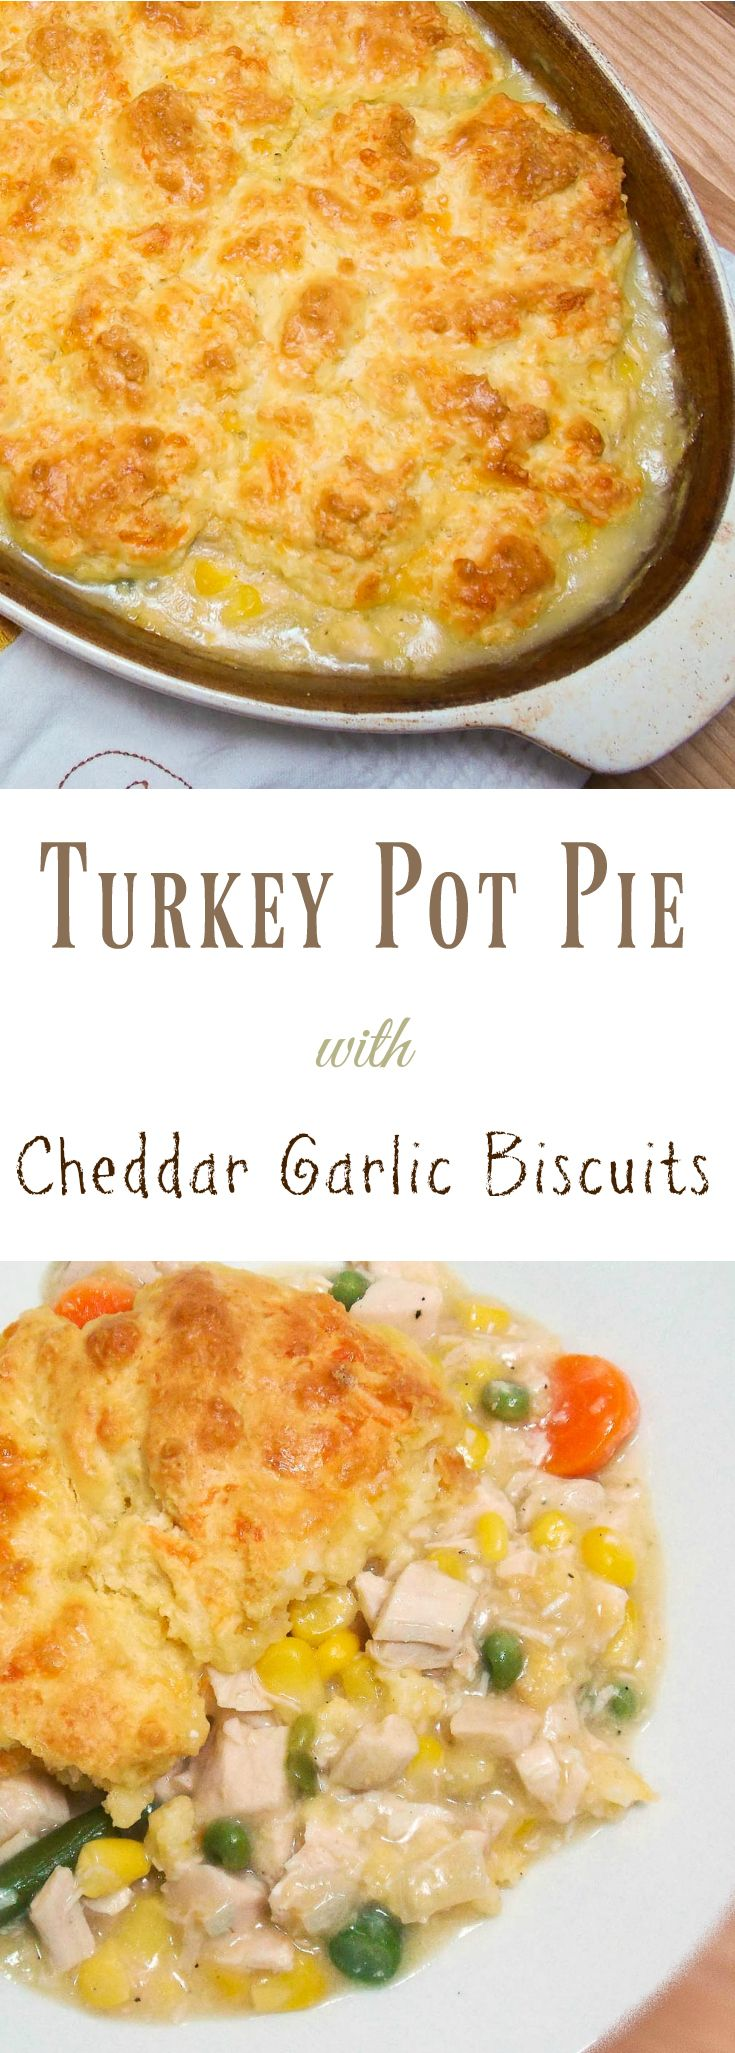 Turkey Pot Pie with Cheddar Garlic Biscuit Topping ...